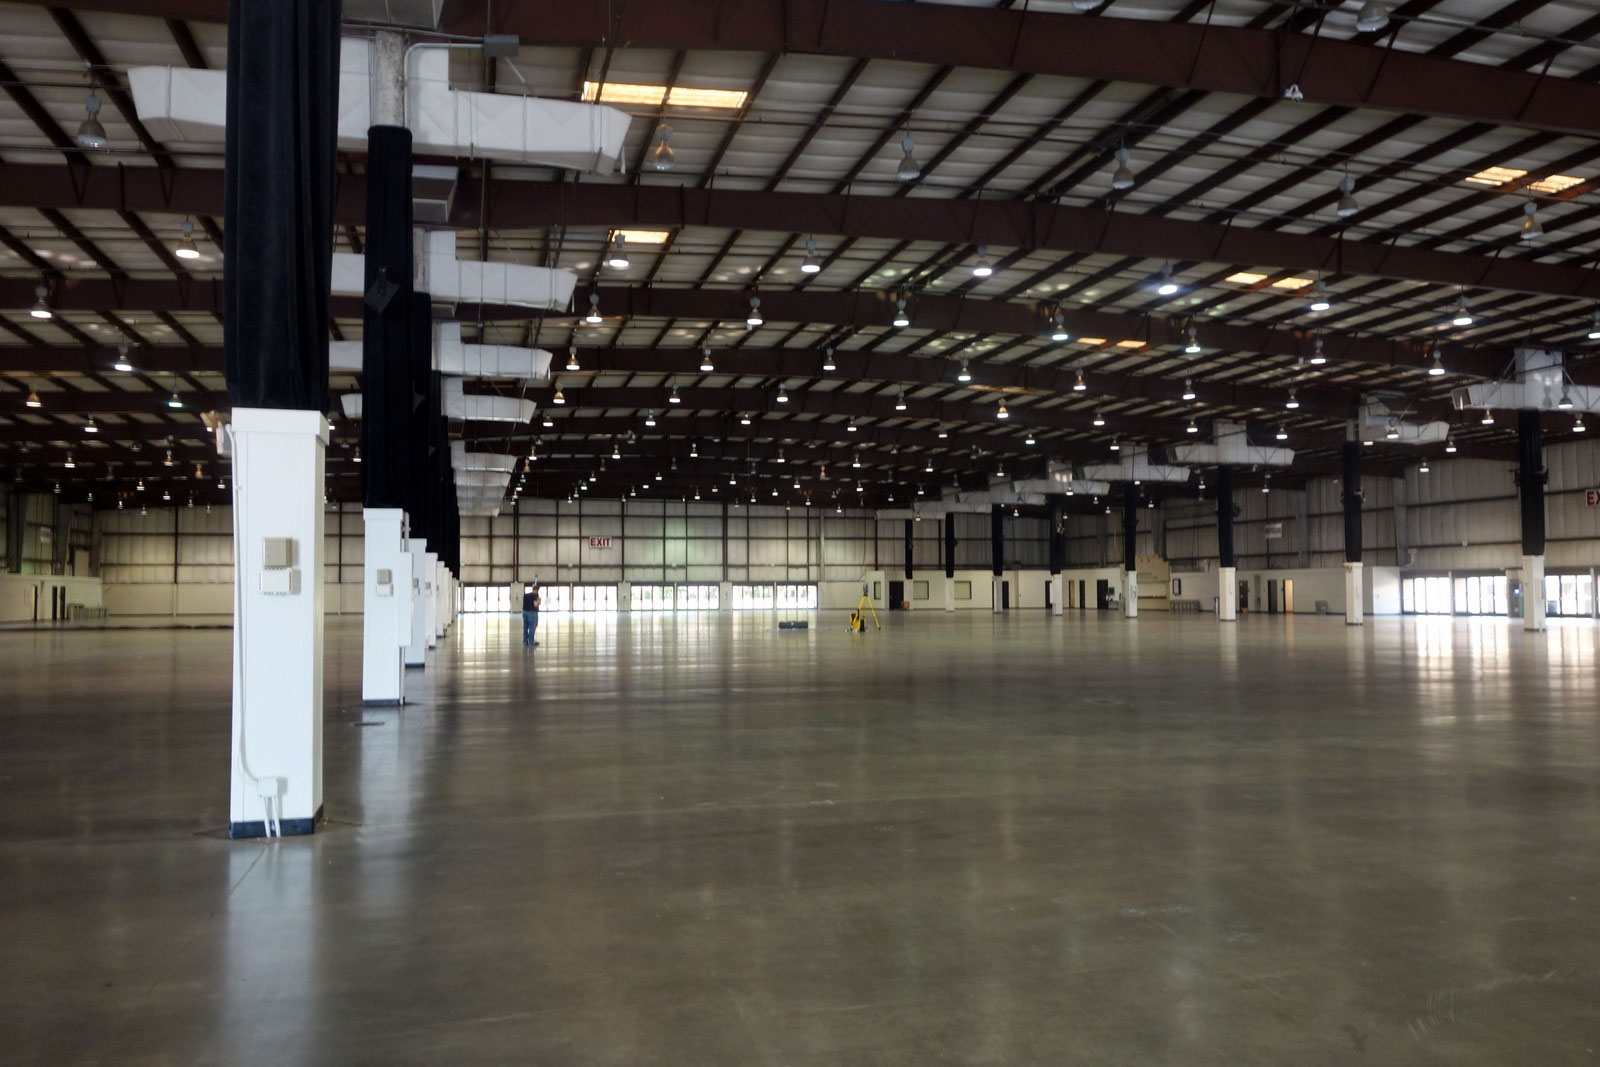 Expo Hall, empty and awaiting the arrival of 300+ maker projects.